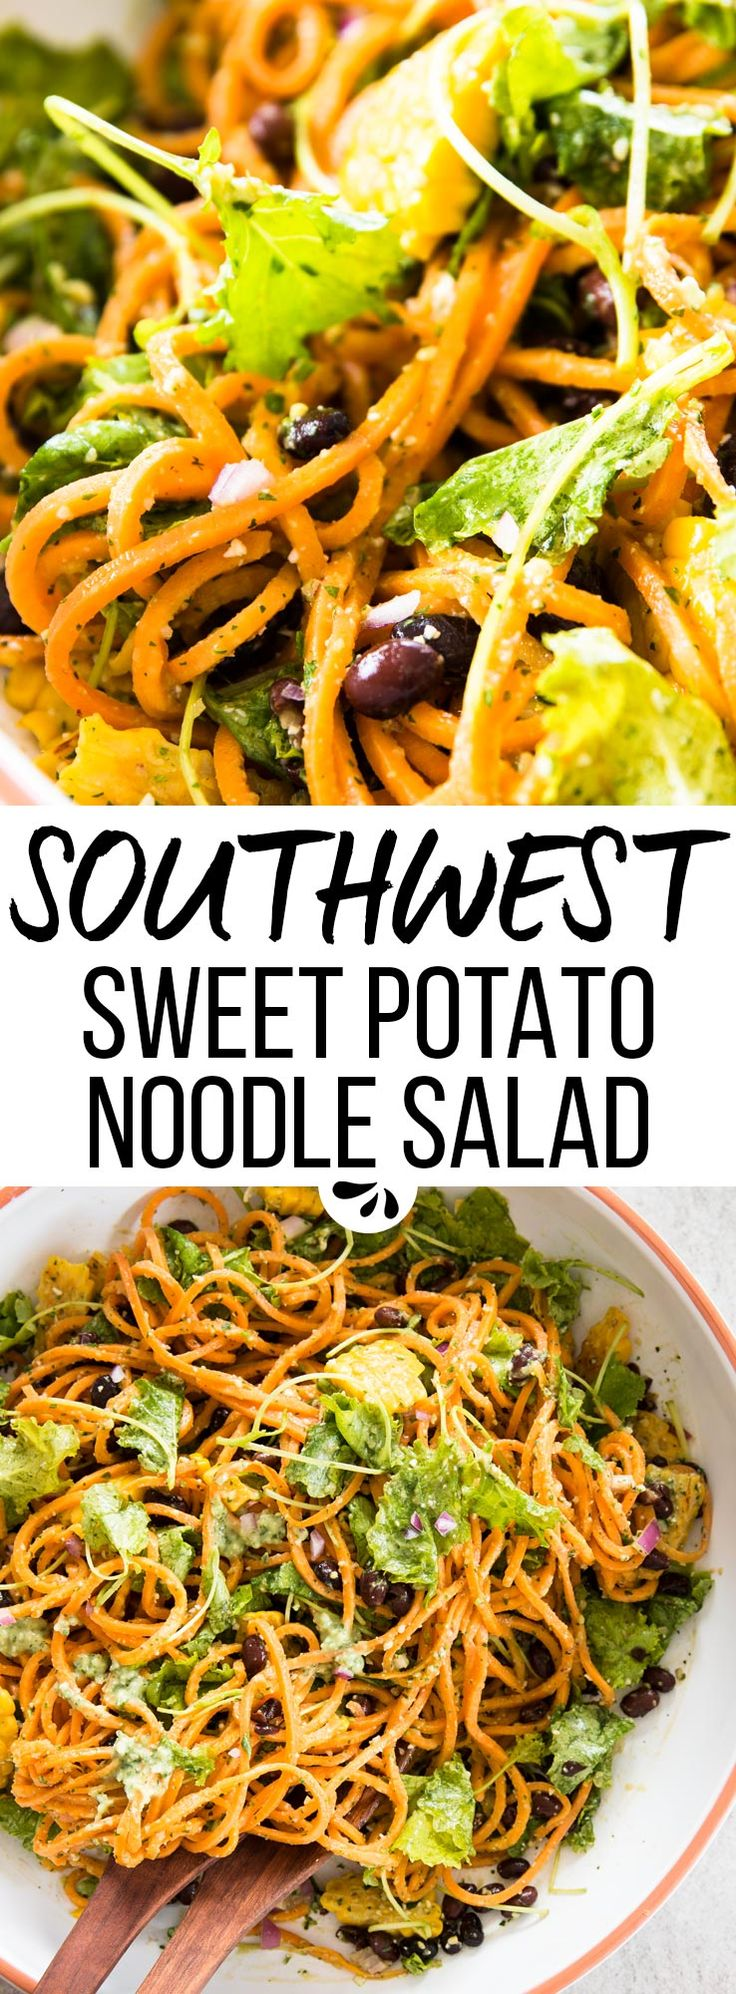 Are you looking for the best cold salad for summer? Try this southwest sweet potato noodle salad! It packs a bunch of flavors into one bowl, and the avocado pesto dressing is out of this world! This is the only healthy, clean eating, vegan summer recipe you need this year - easy, a little spicy and packed with fiber from the black beans, corn and baby kale. via @savorynothings